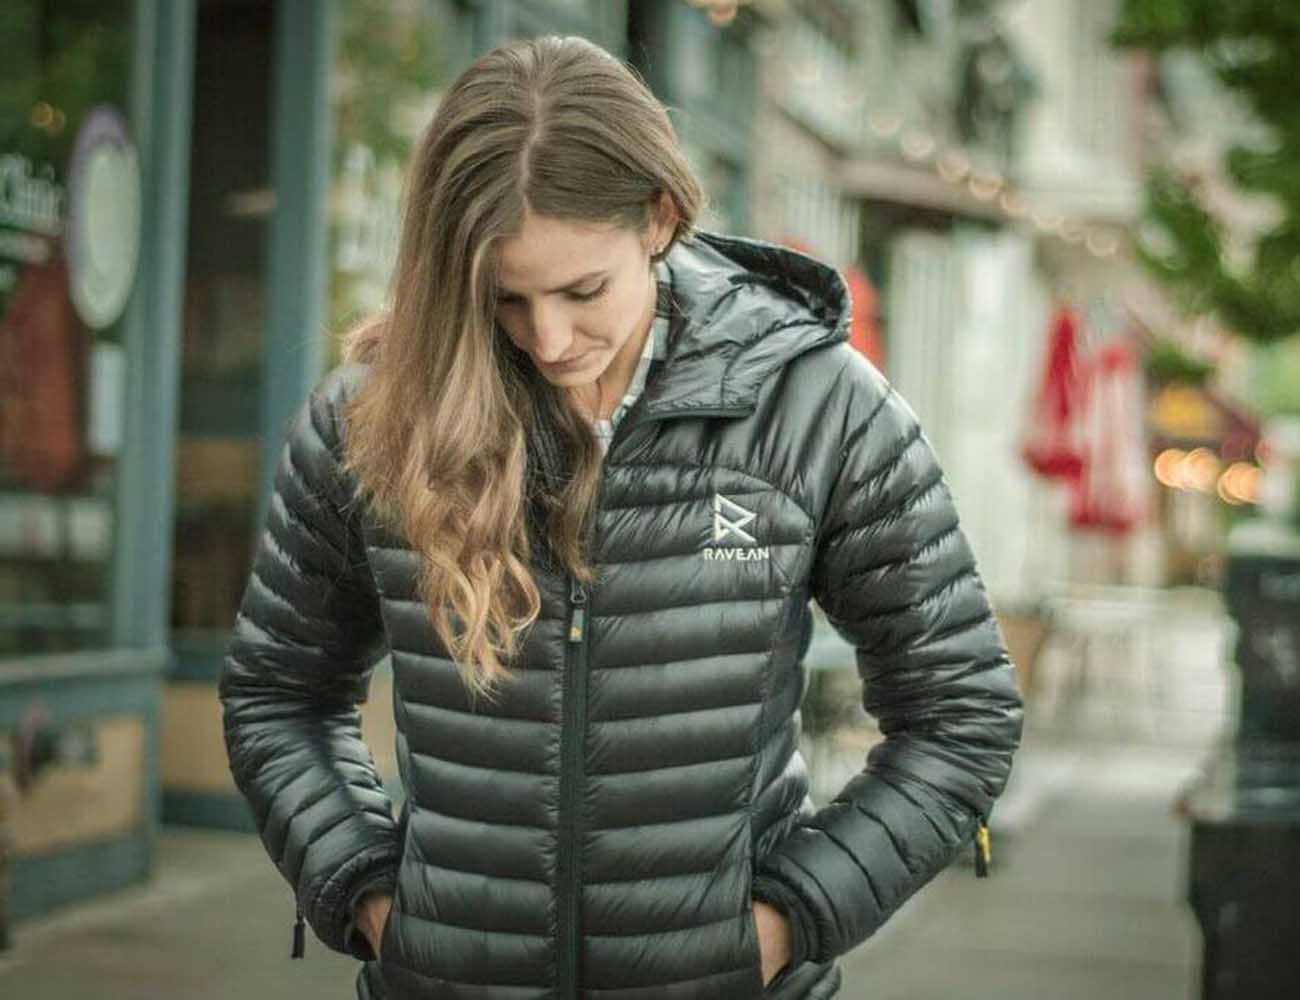 Ravean – The World's First Heated Down Jacket with 6X Charging